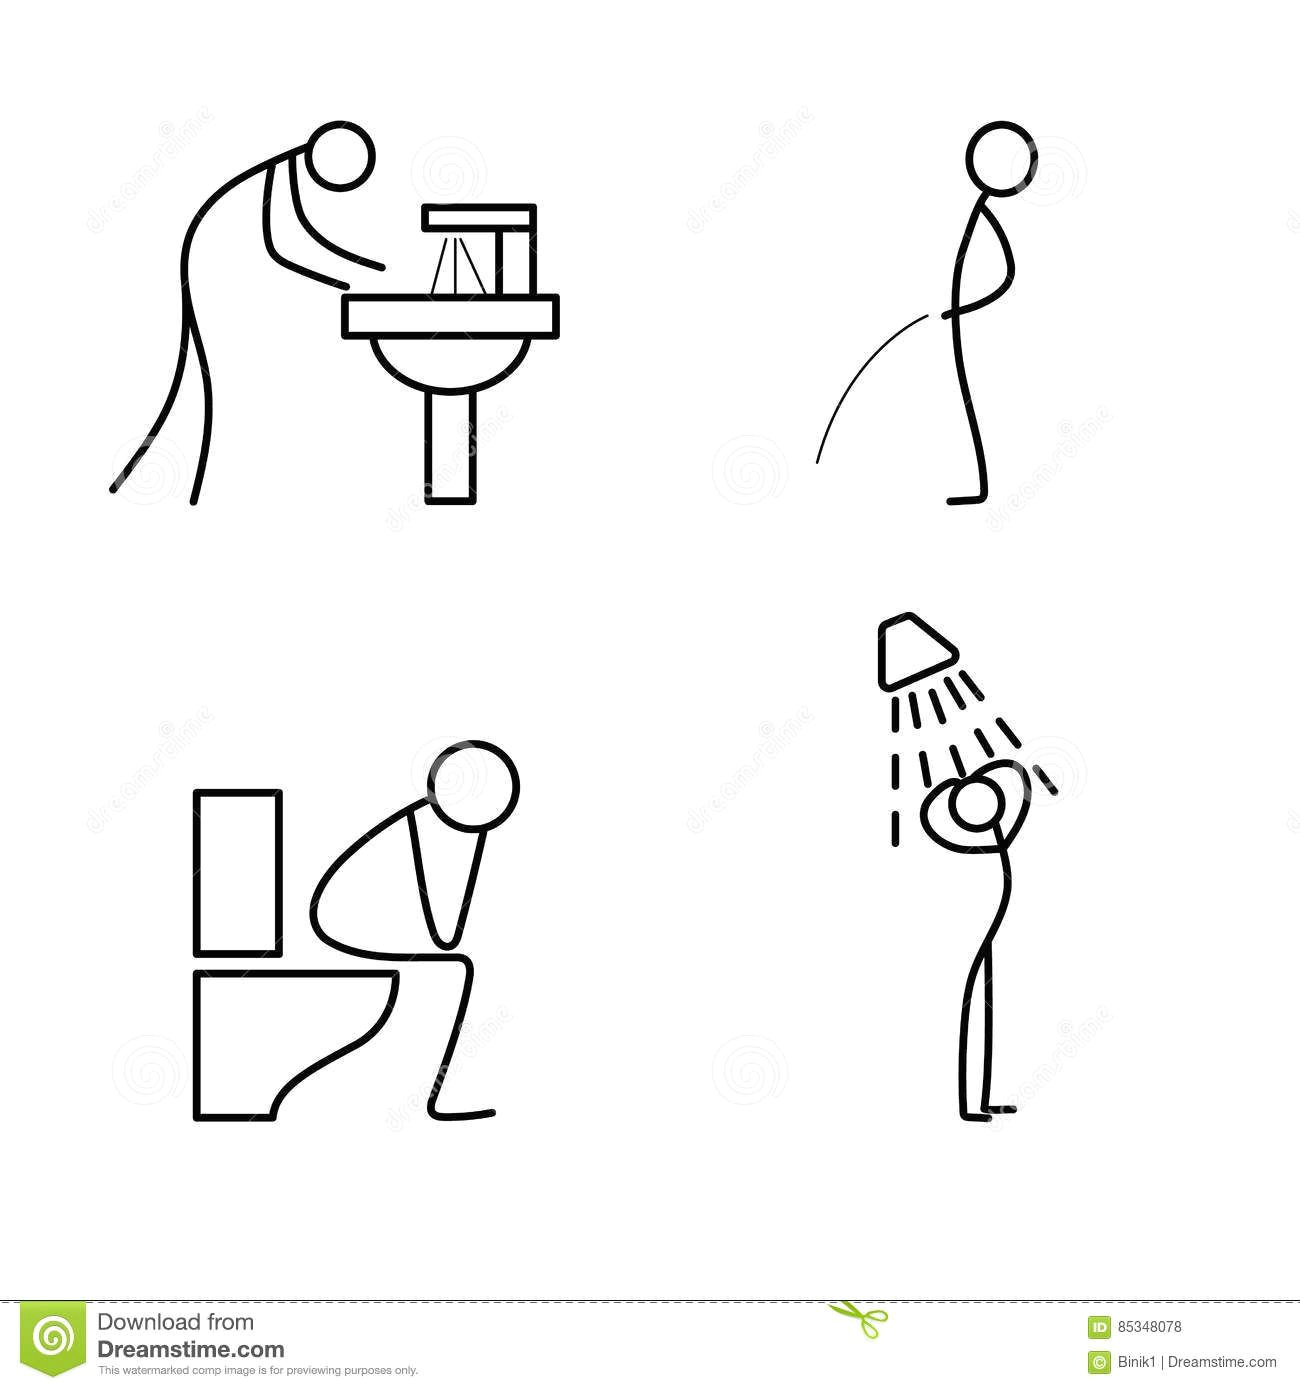 cartoon icon of sketch stick figure doing life routine download from over 56 million high quality stock photos images vectors sign up for free today